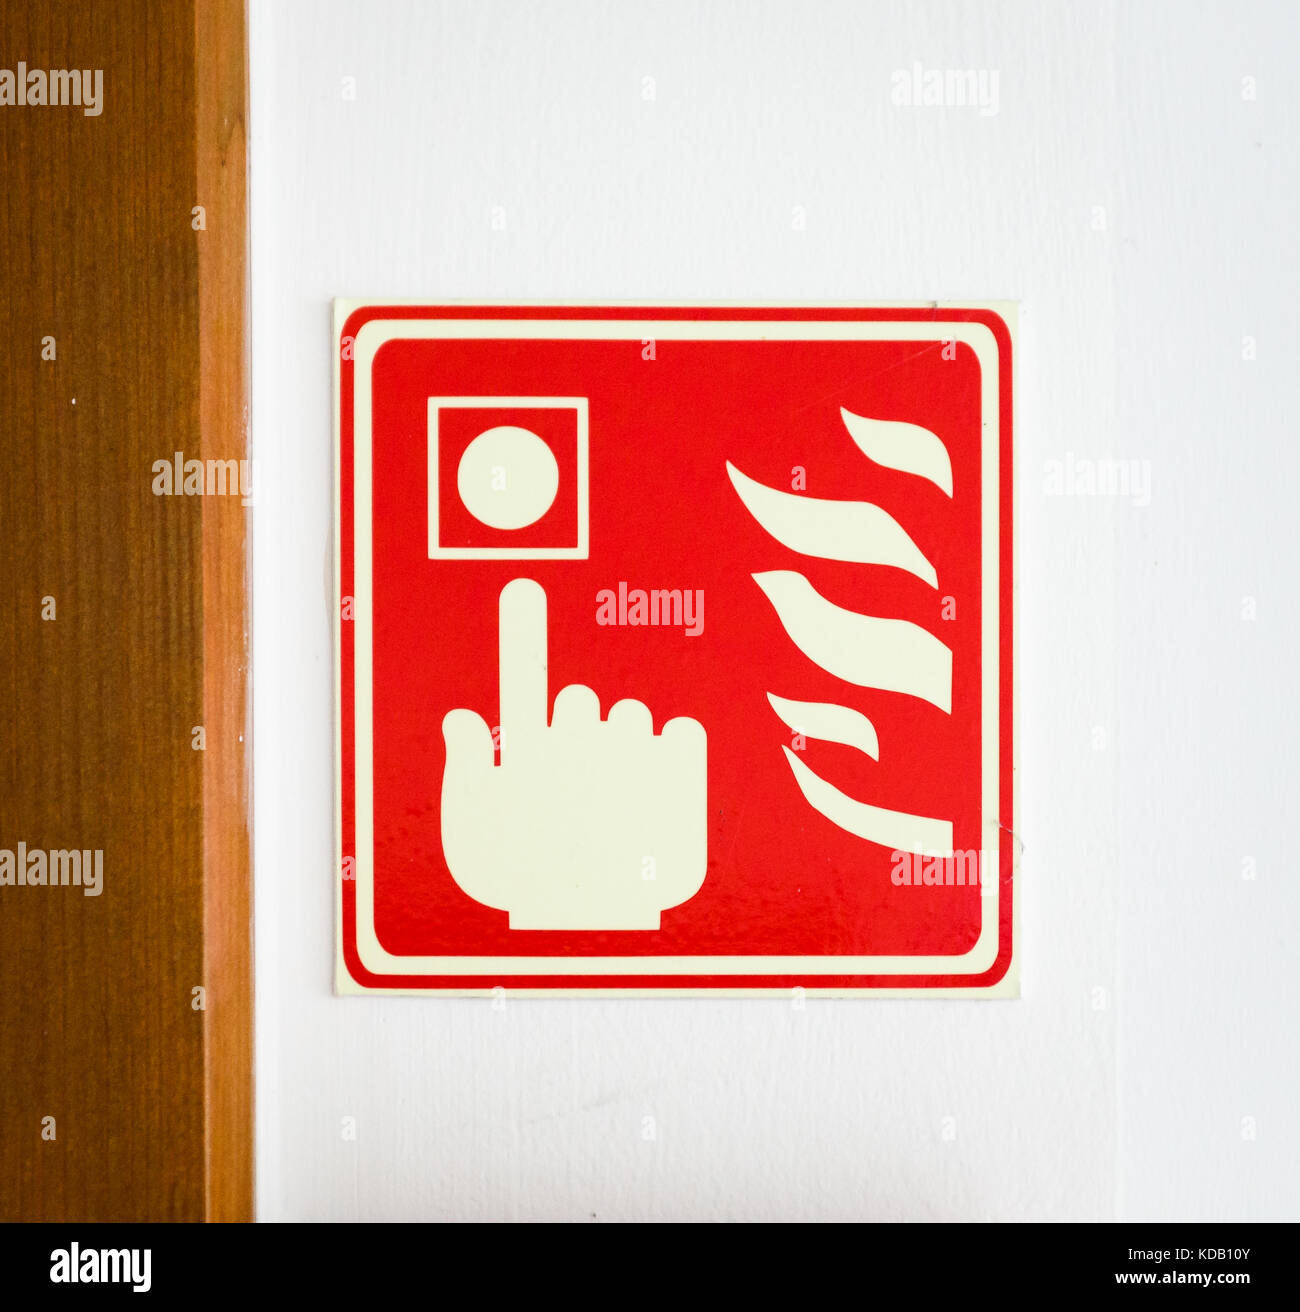 Emergency Fire Alarm Safety Call Point Sign On A Wall A Photograph